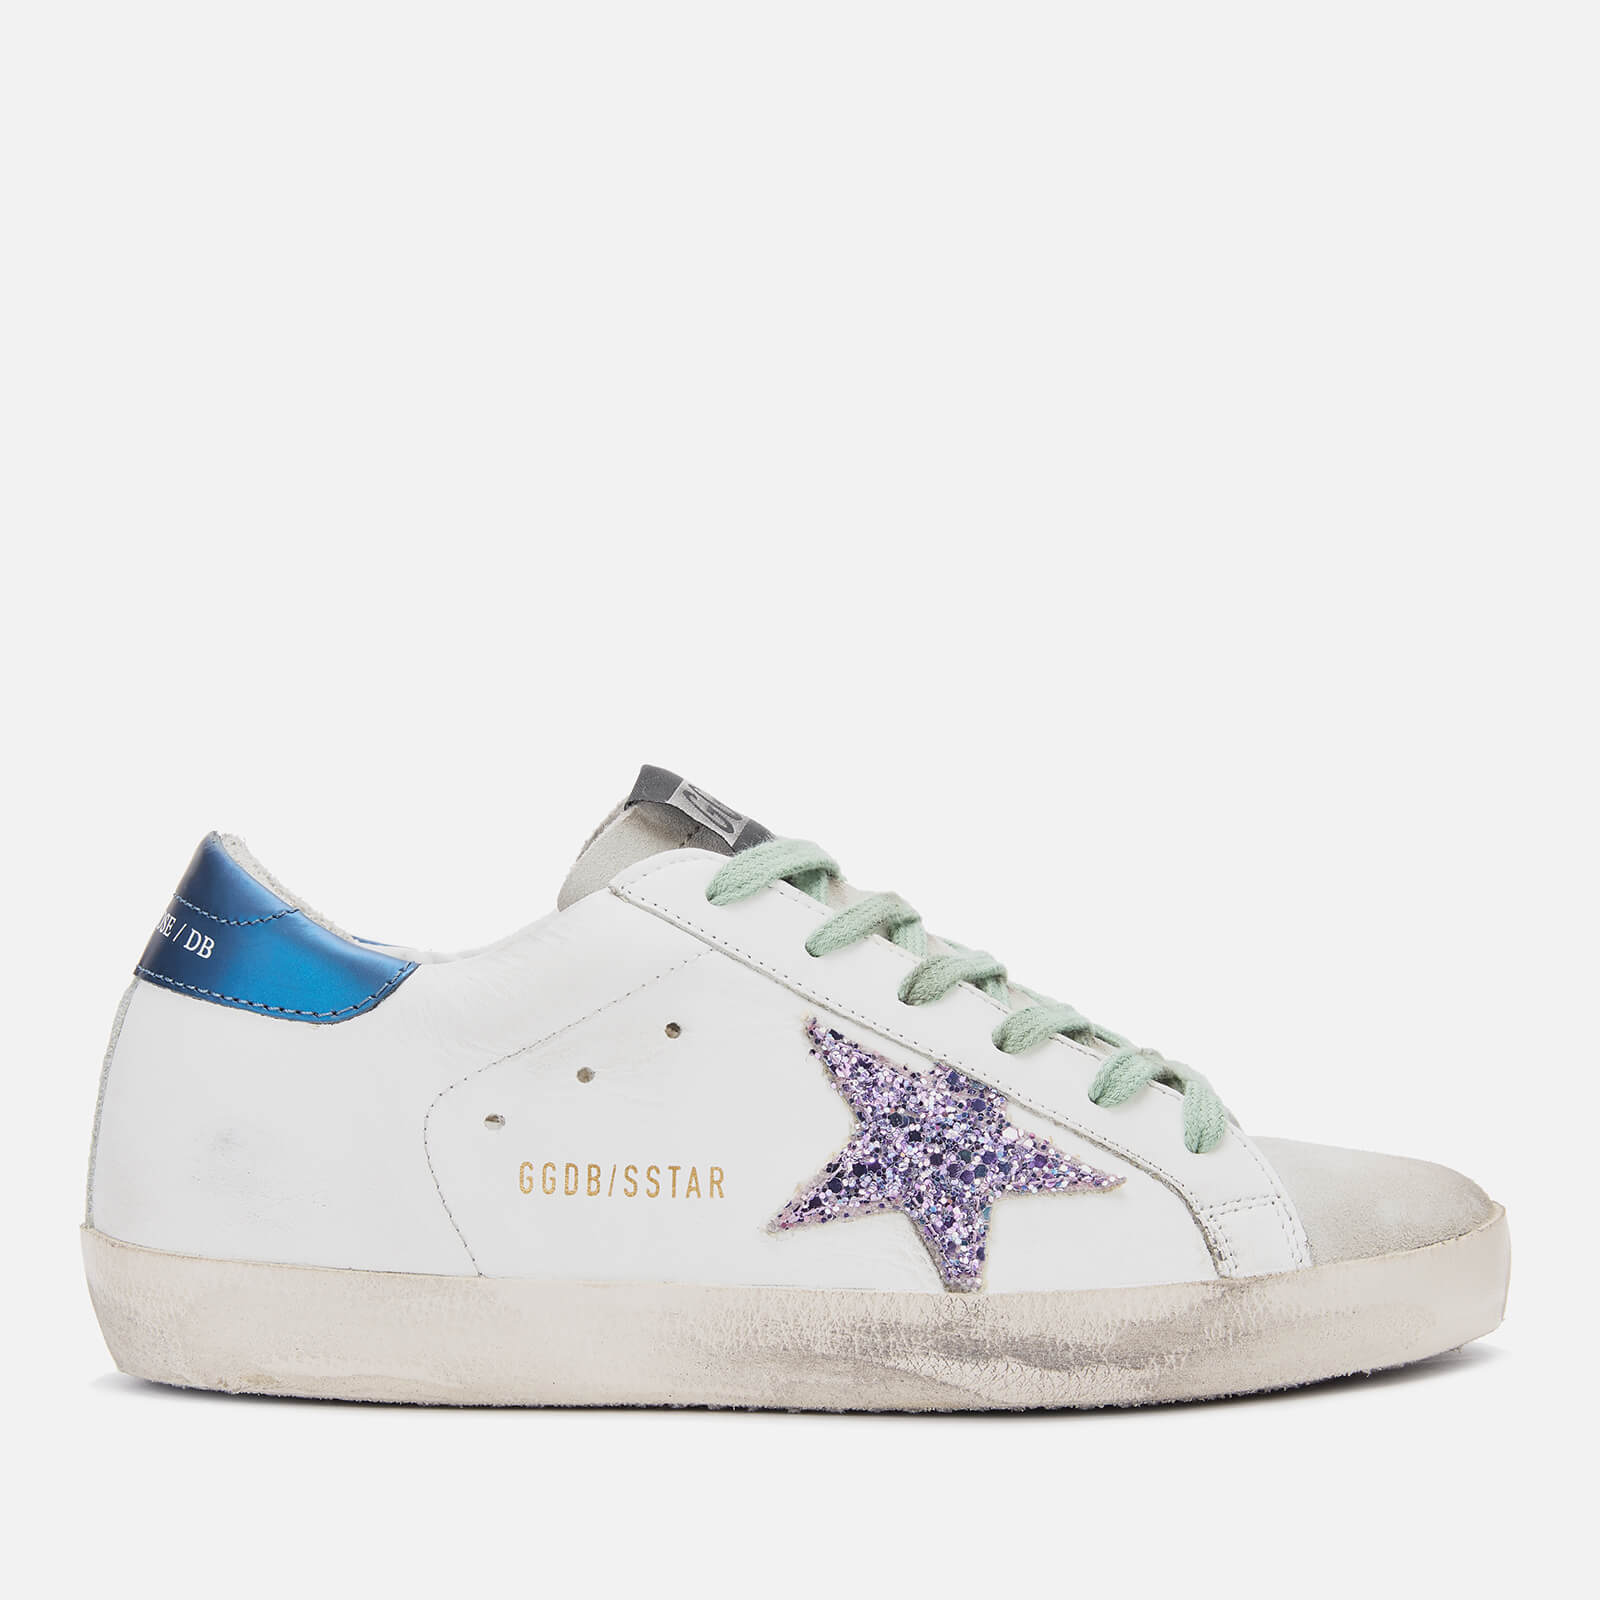 49faeb3eec Golden Goose Deluxe Brand Women's Superstar Leather Trainers - White  Blue/Pink Glitter